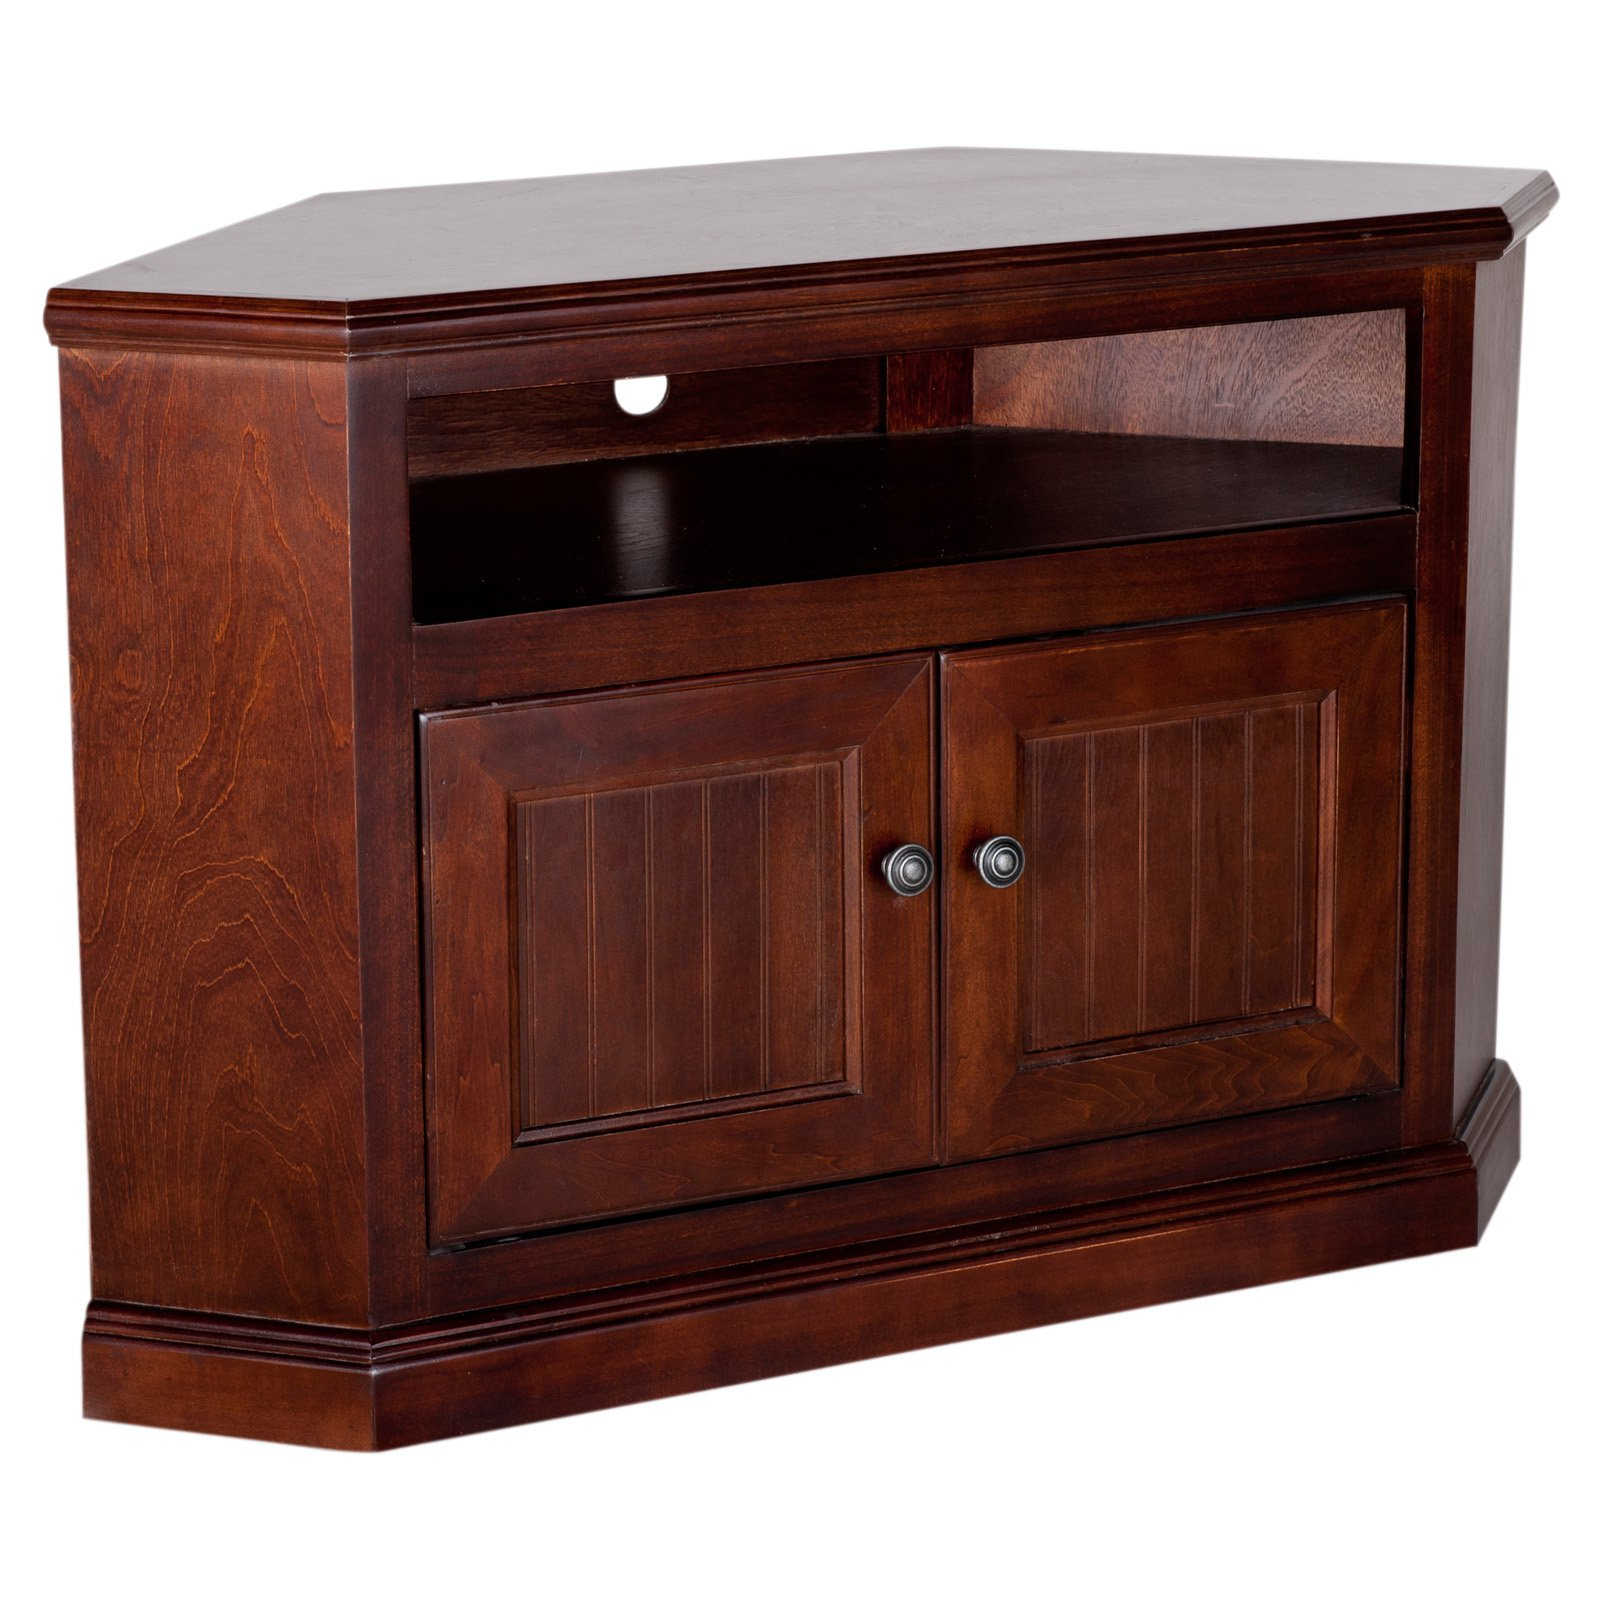 Eagle Furniture Coastal 41 in. Corner Entertainment Center